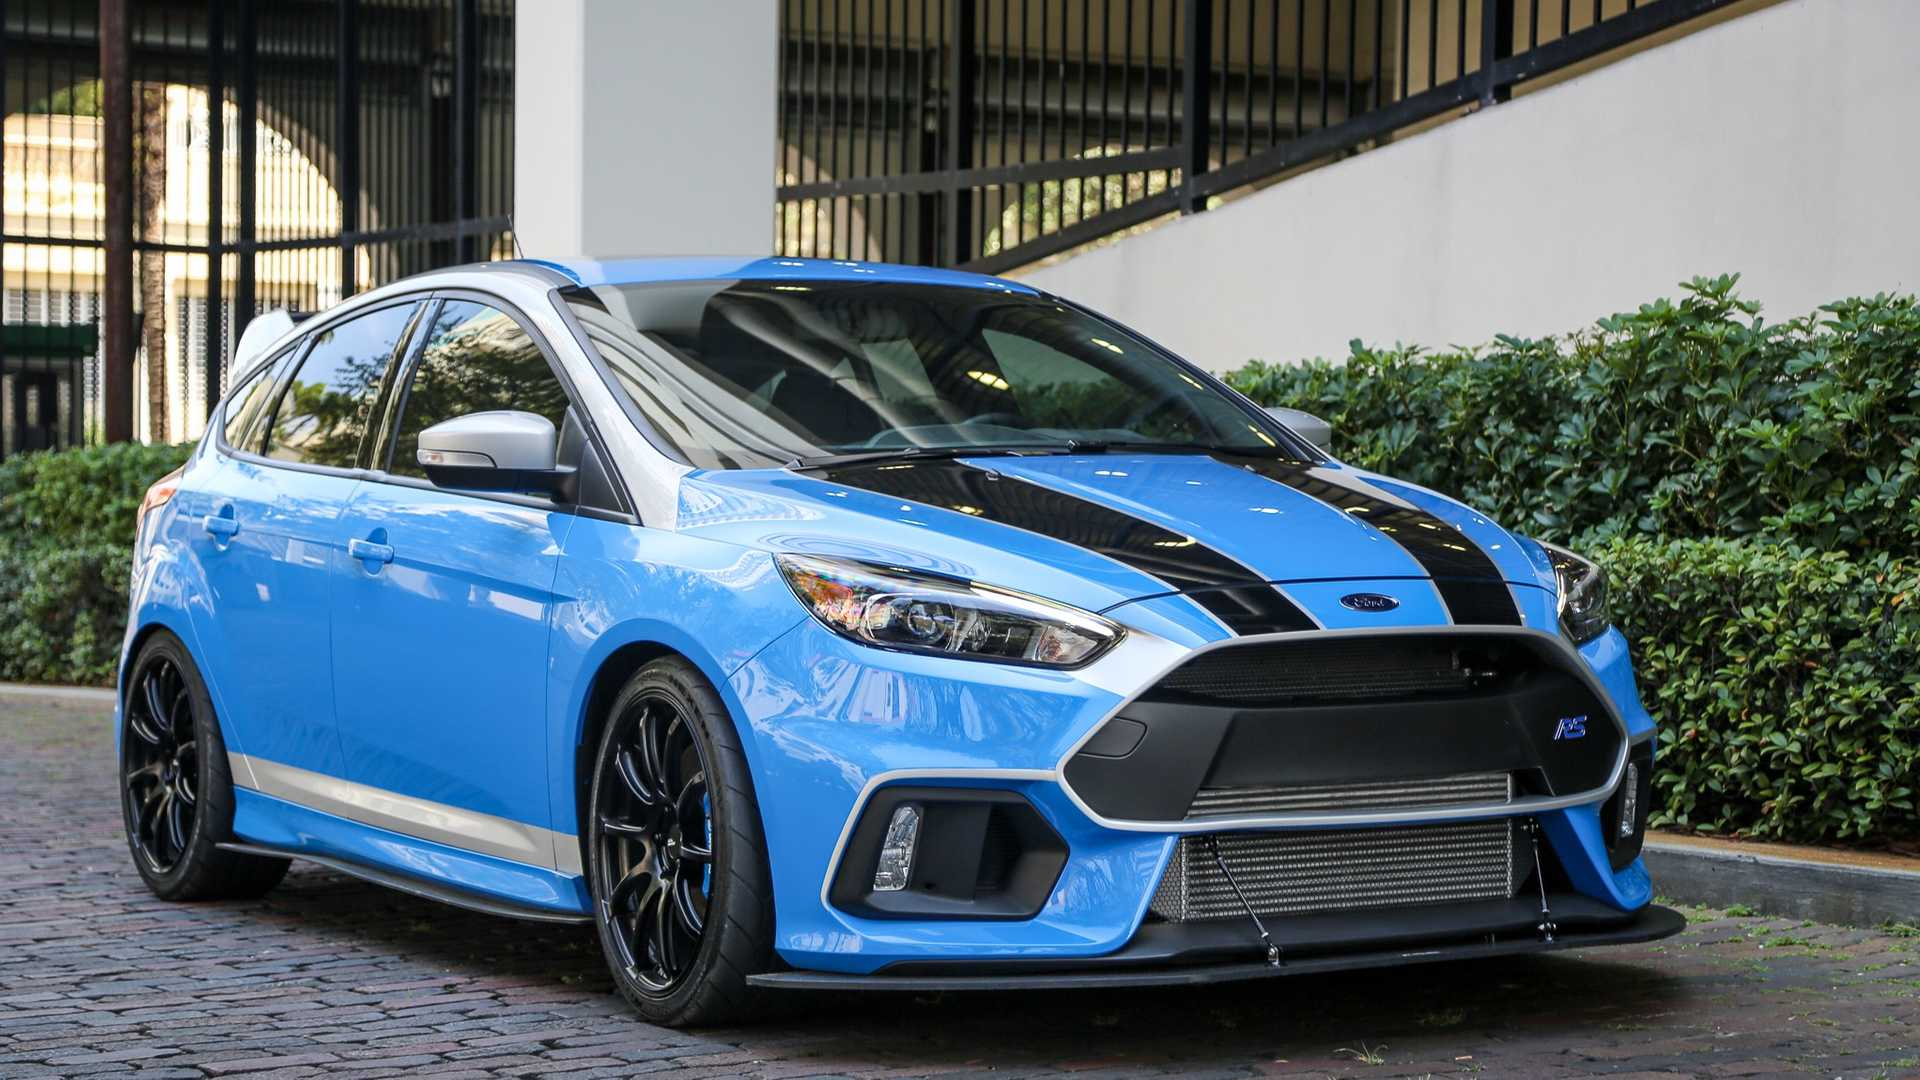 Ford Focus Rs Hp >> Win This 450 Hp Ford Focus Rs And Get Double Entries On